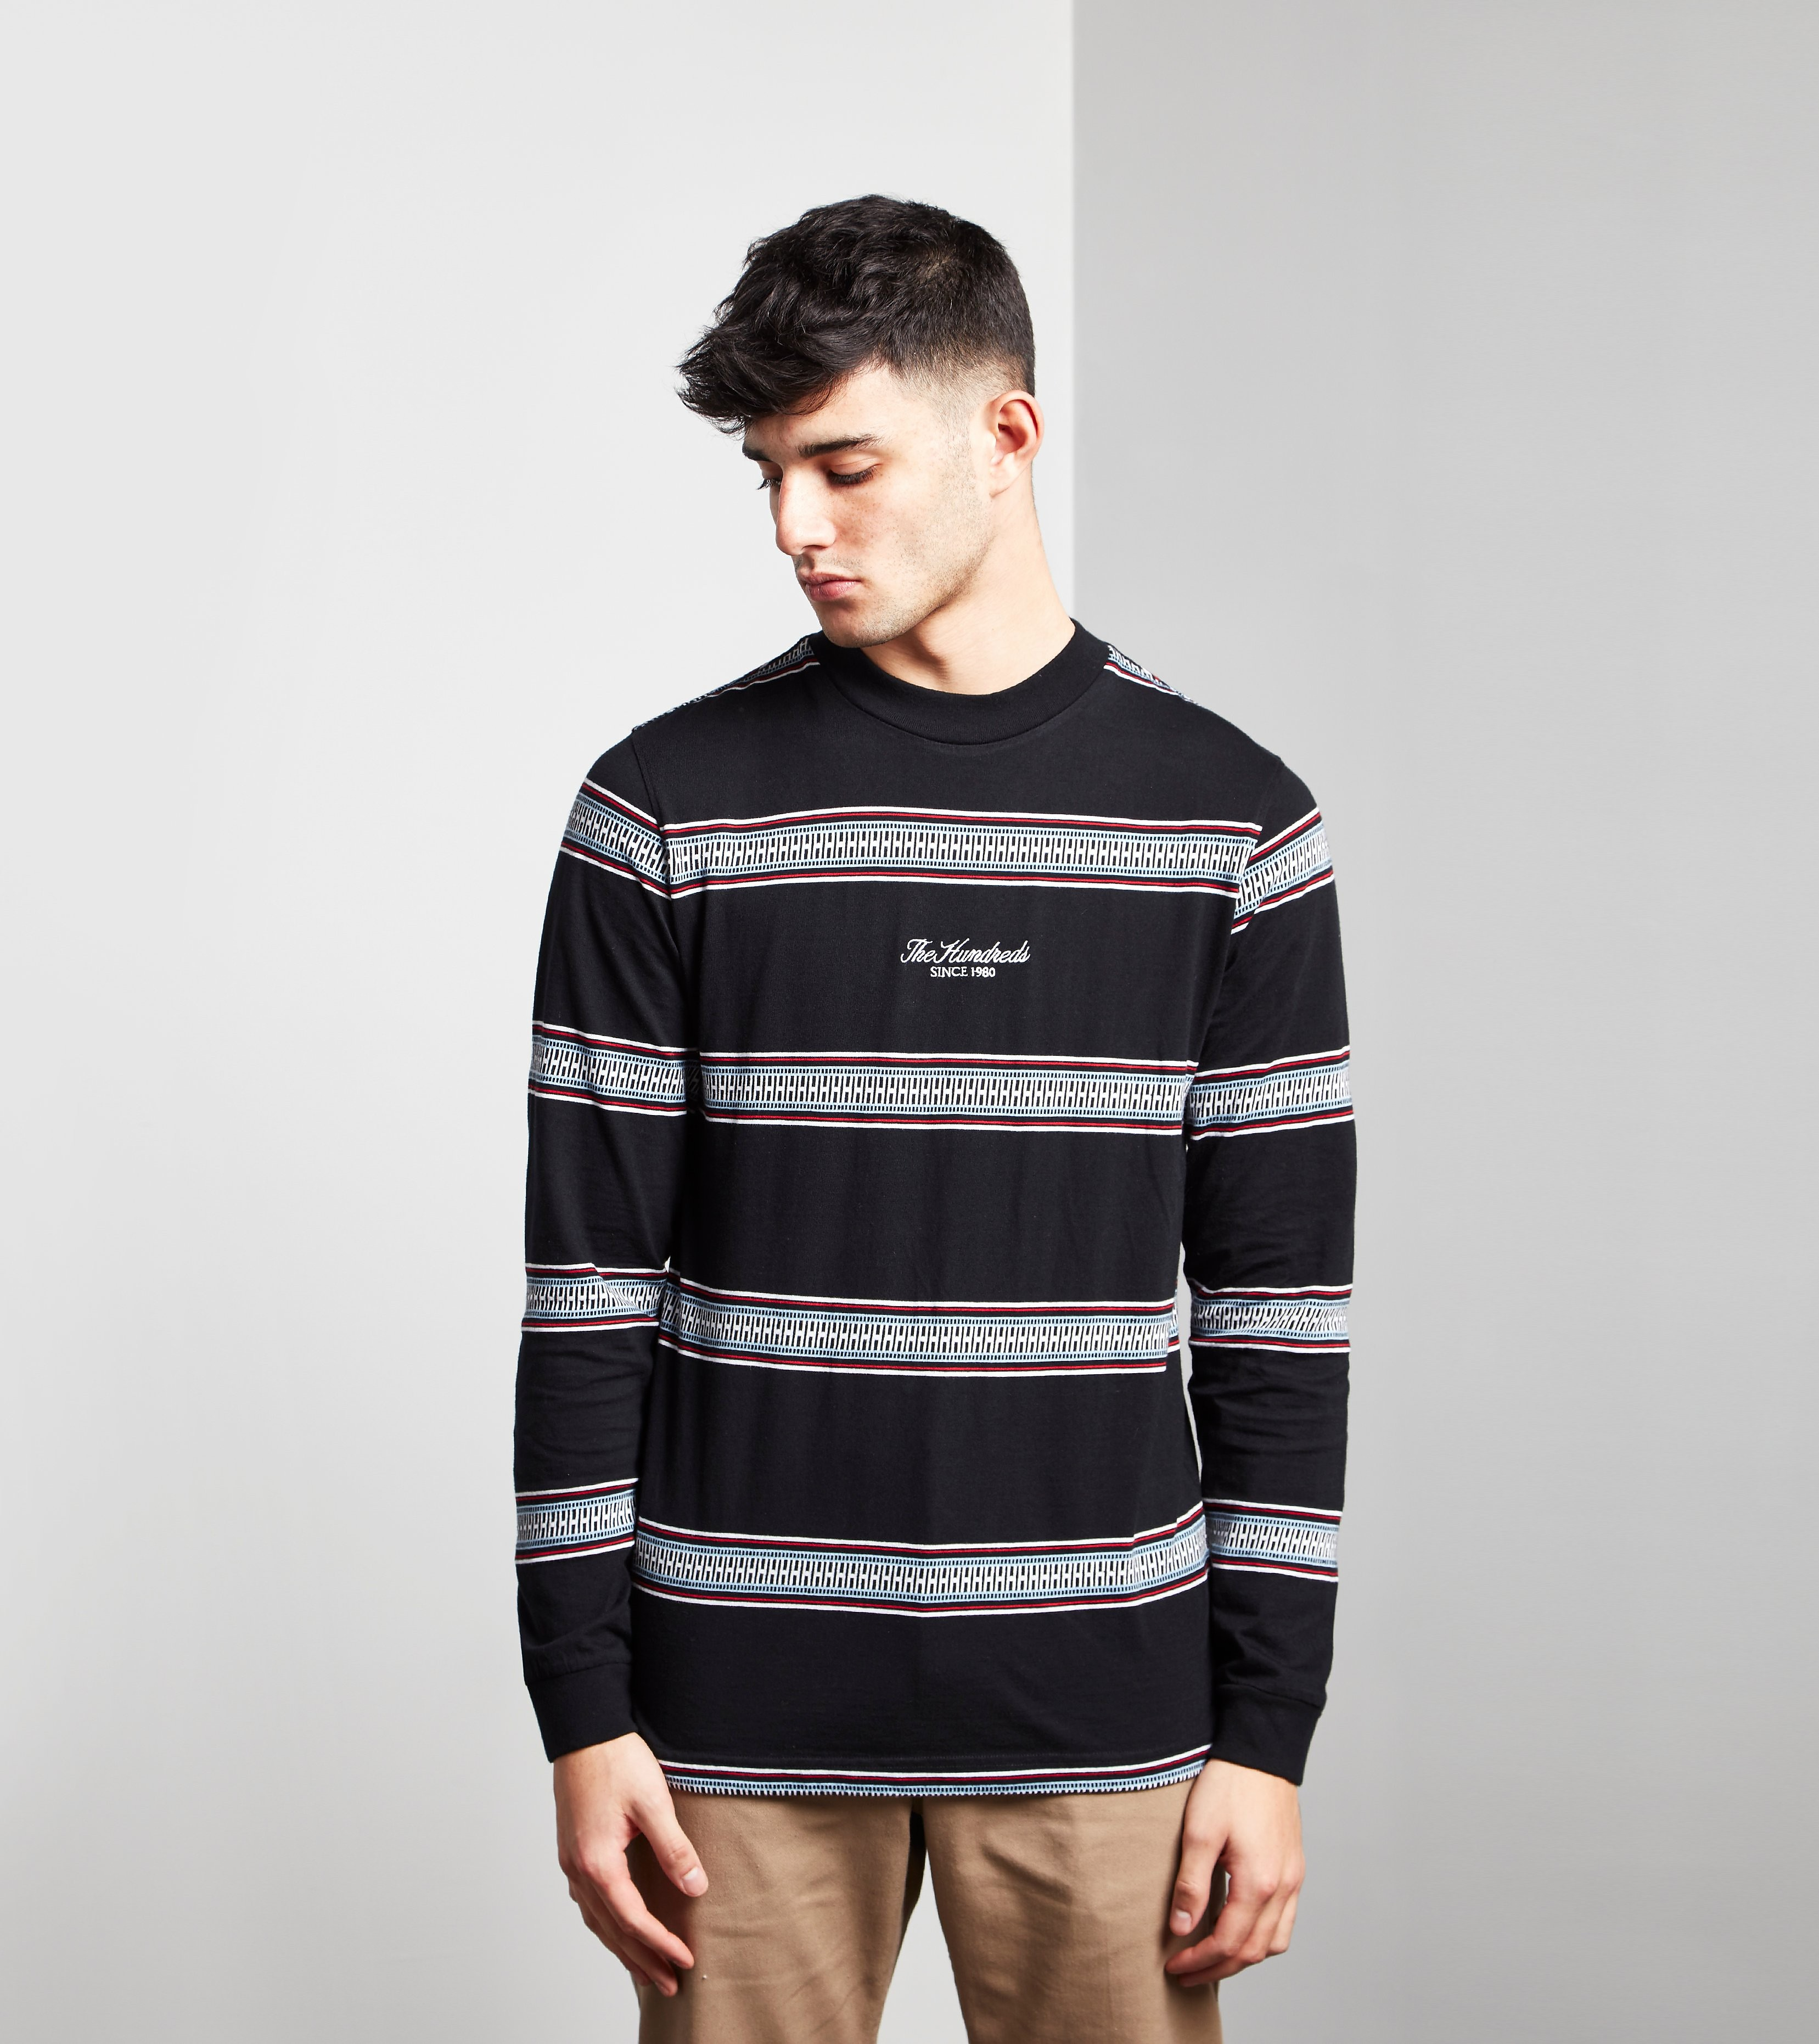 The Hundreds Long-Sleeved Cove T-Shirt